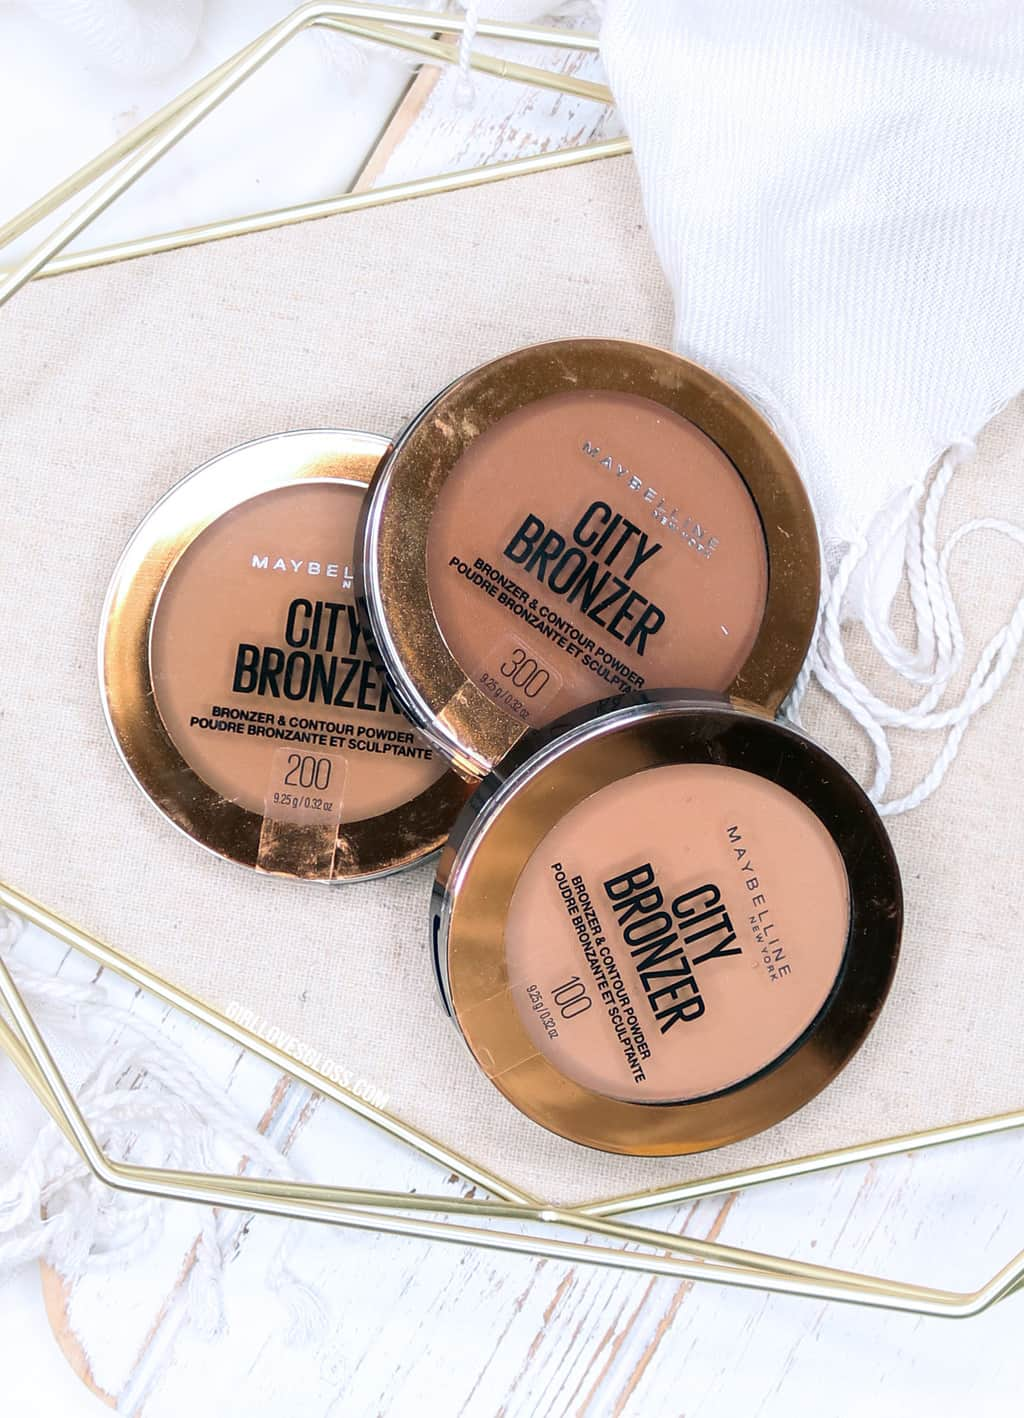 The Best Affordable Drugstore Bronzer?